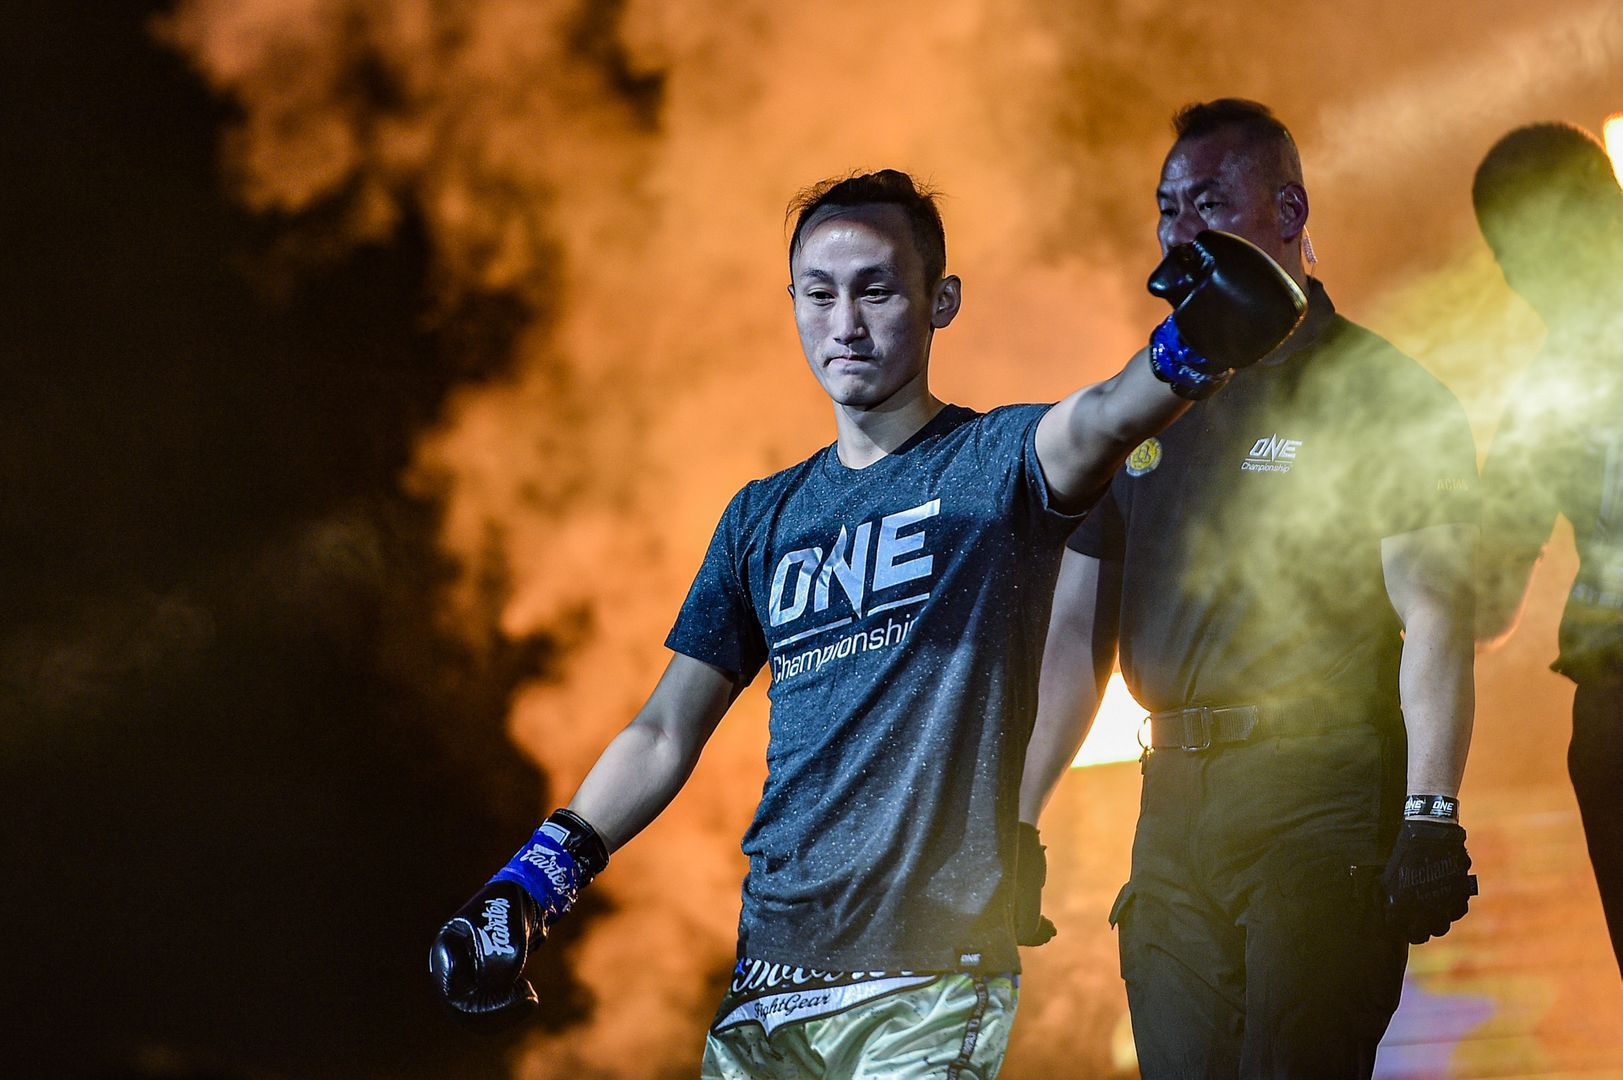 Chinese kickboxer Wang Wenfeng makes his entrance